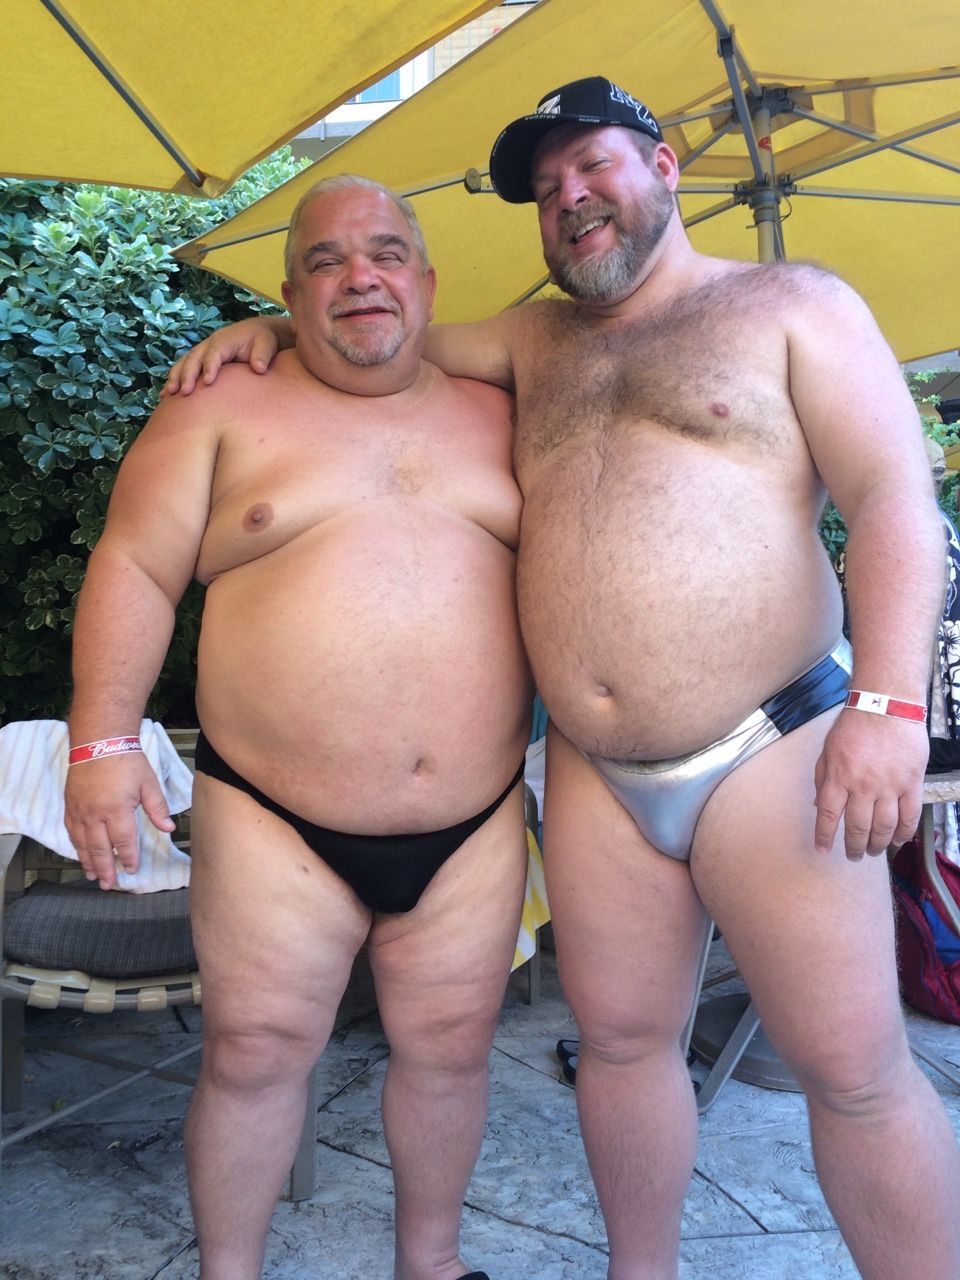 Chubby gay men free sites